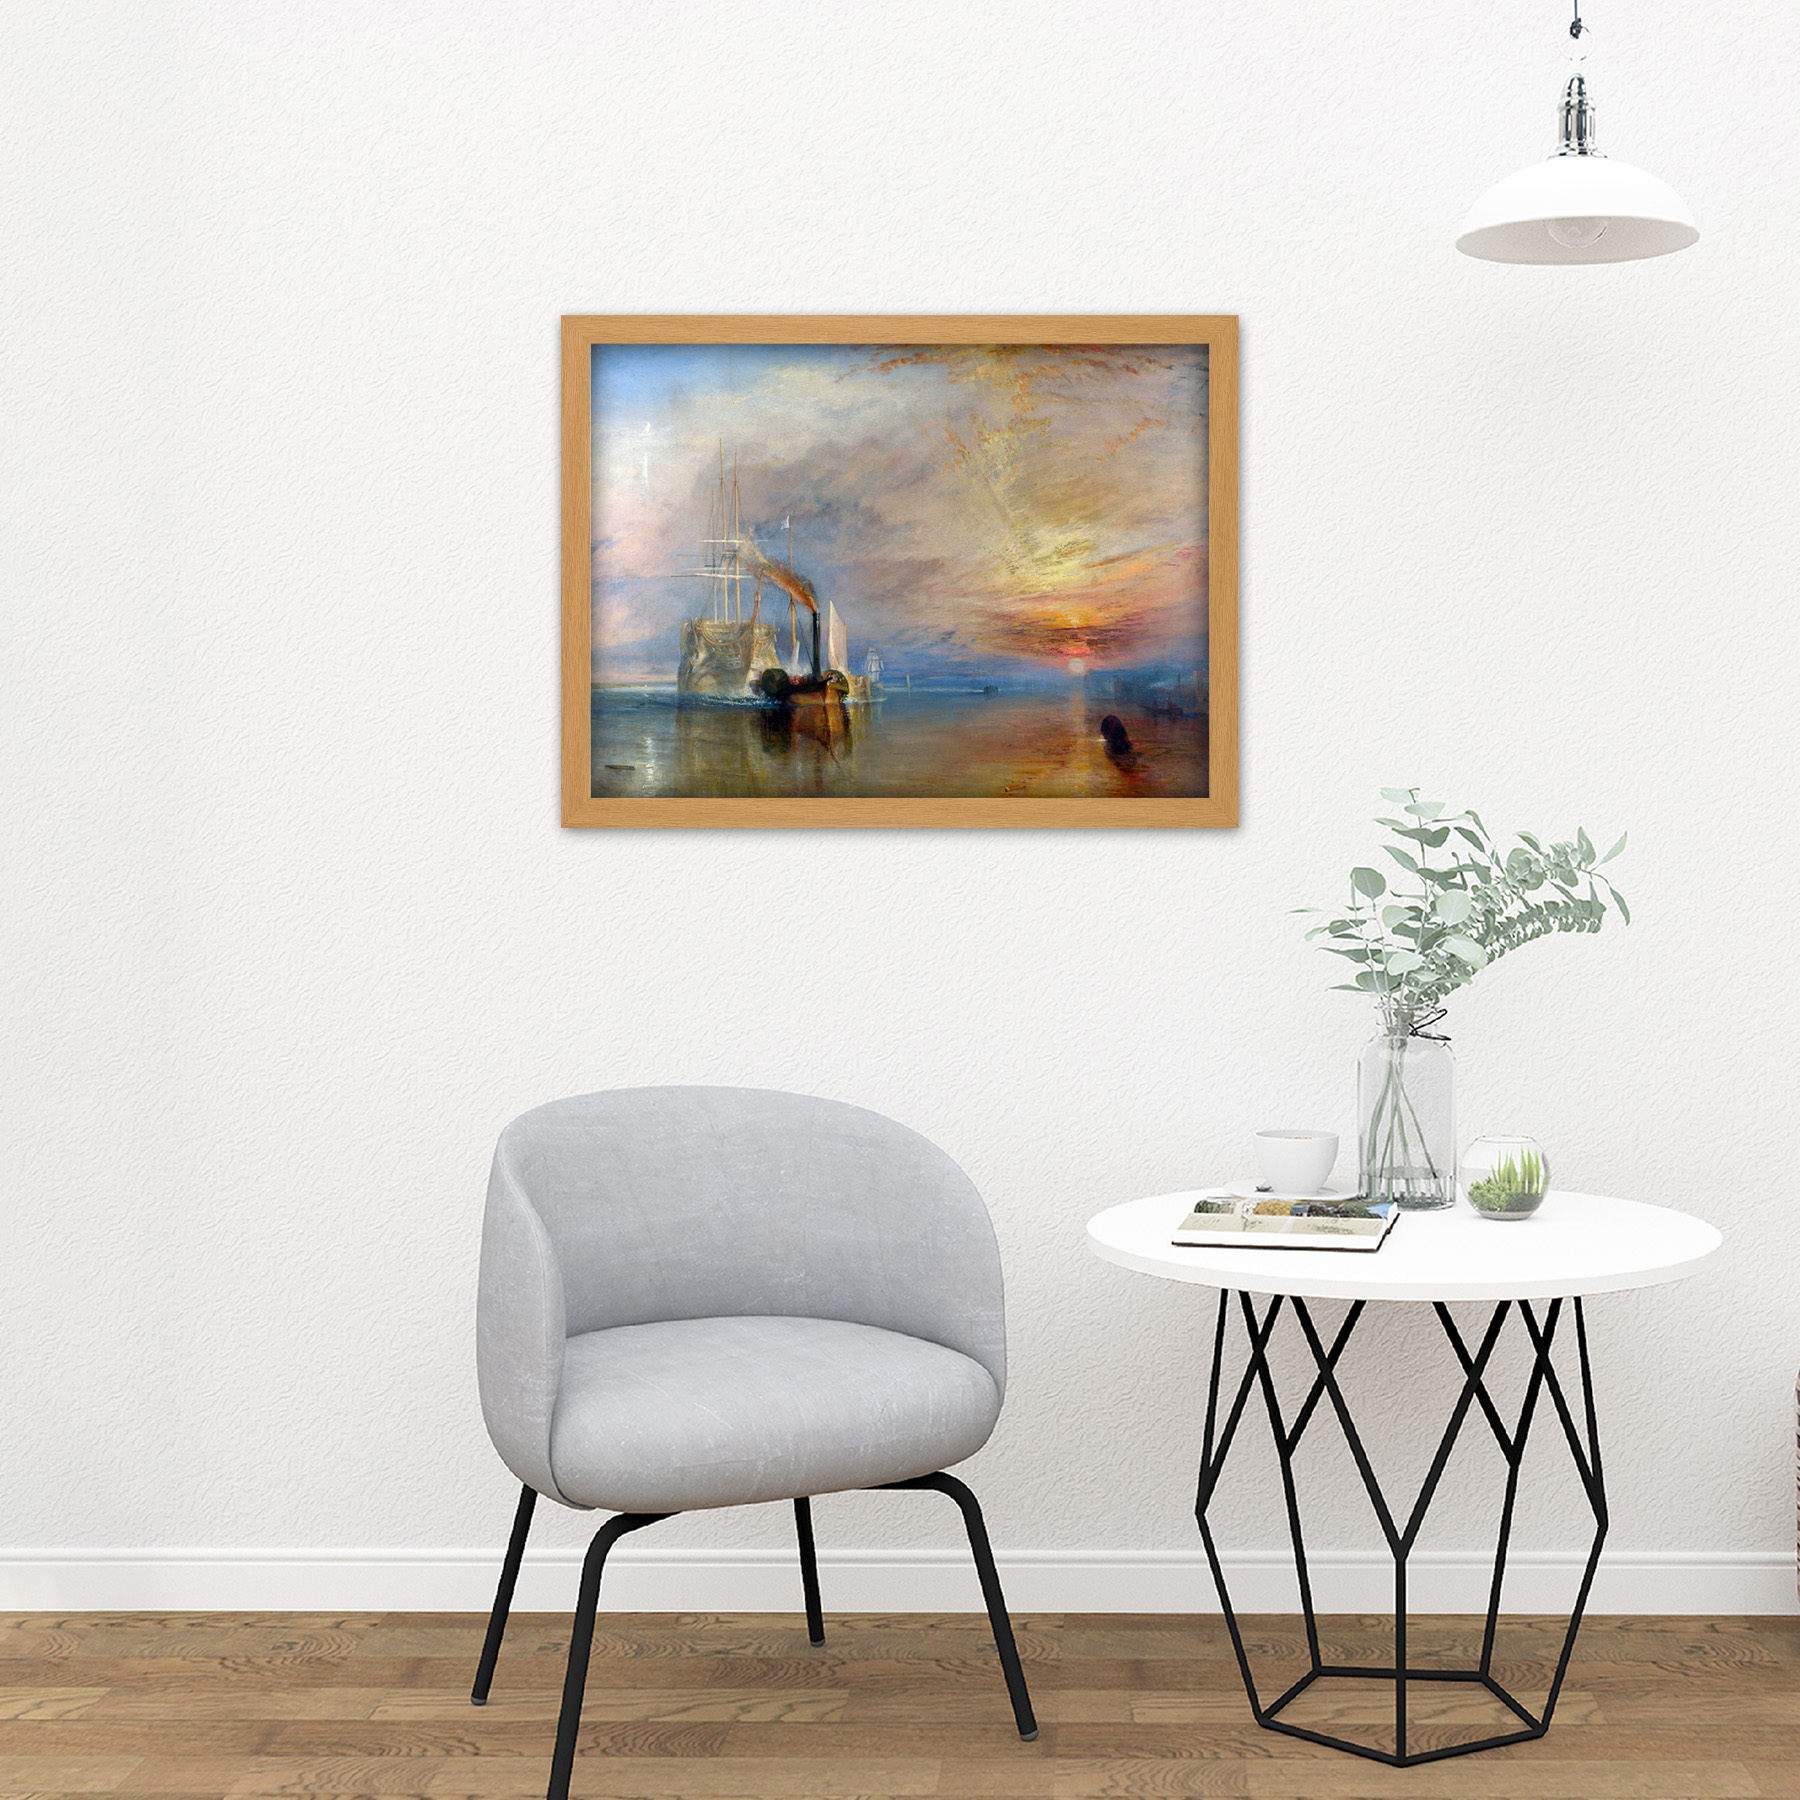 Turner-The-Fighting-Temeraire-Ship-Painting-Framed-Wall-Art-Print-18X24-In thumbnail 16